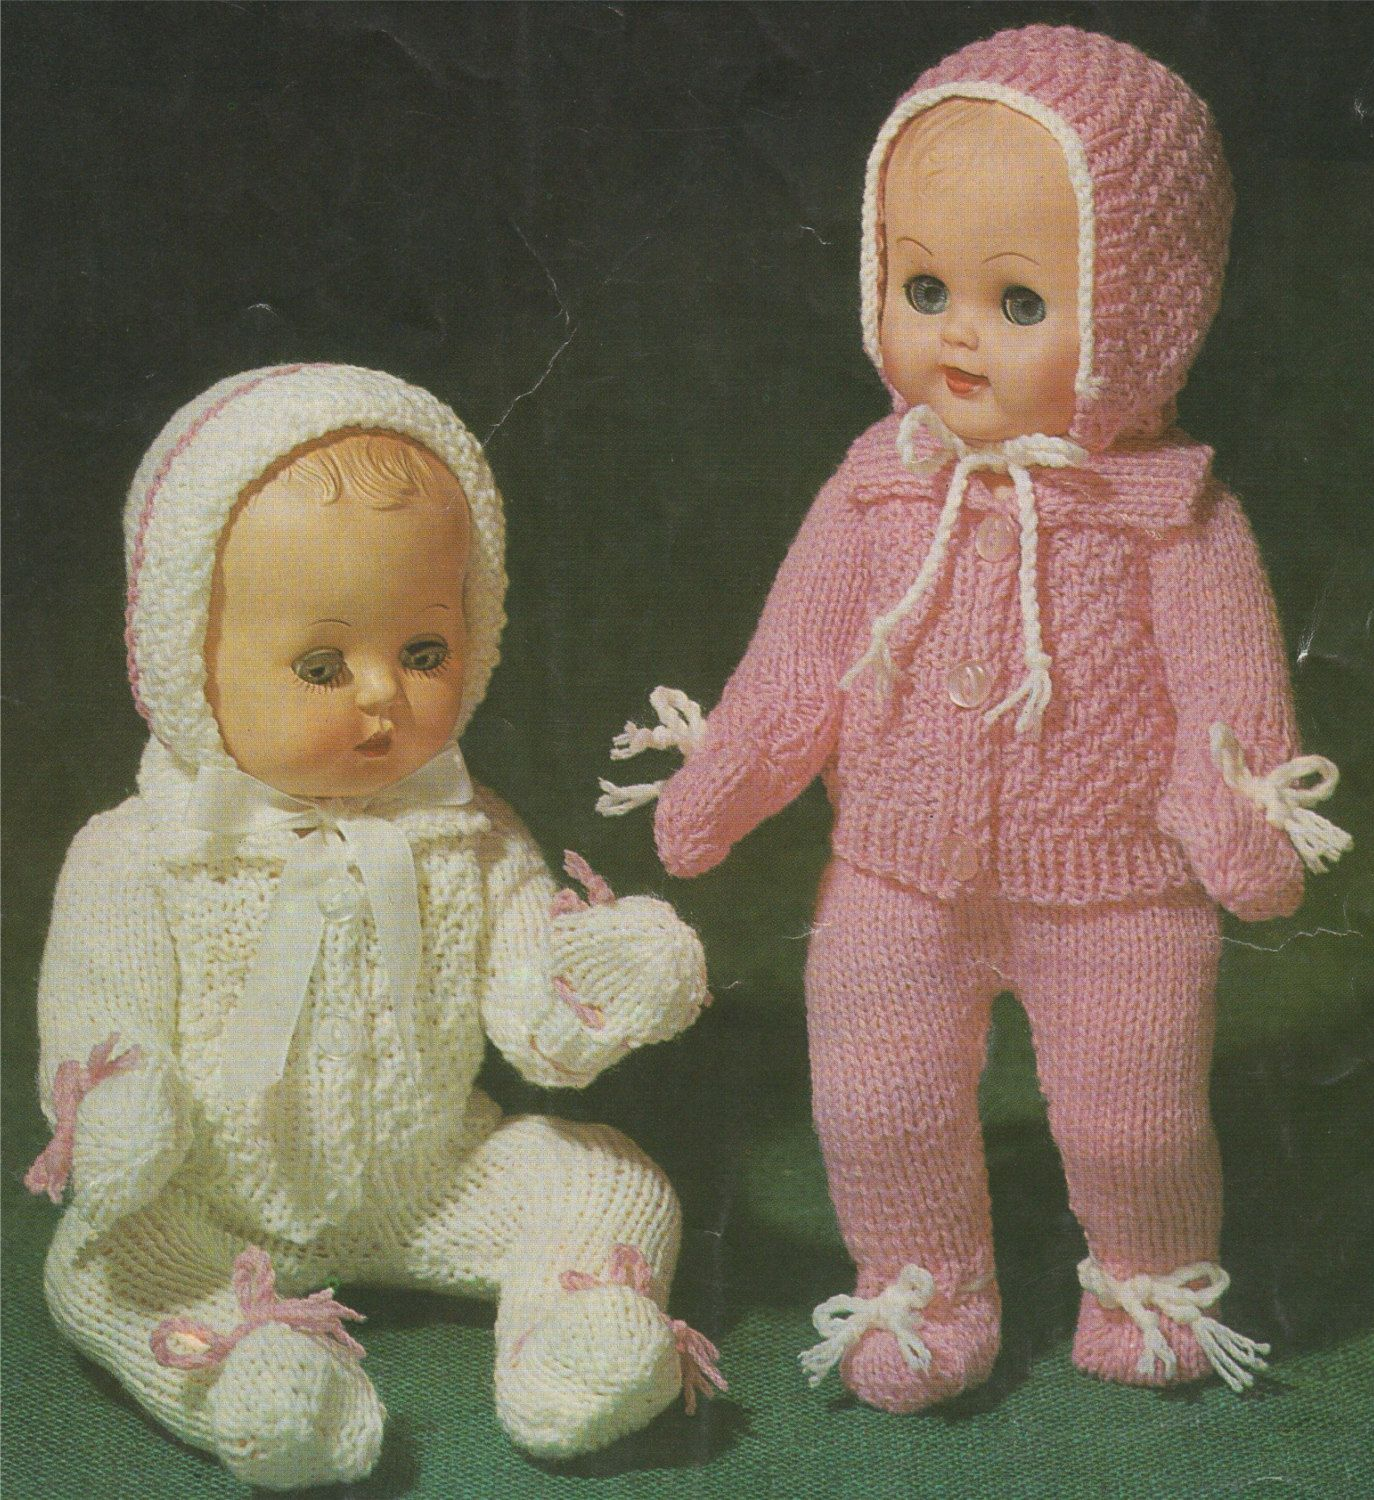 Dolls Clothes Knitting Pattern Pdf For 10 12 14 16 Inch Baby Doll Berenguer Dolls Tiny Tears Doll Vintage Knitting Patterns For Dolls Baby Doll Clothes Knitting Dolls Clothes Tiny Tears Doll